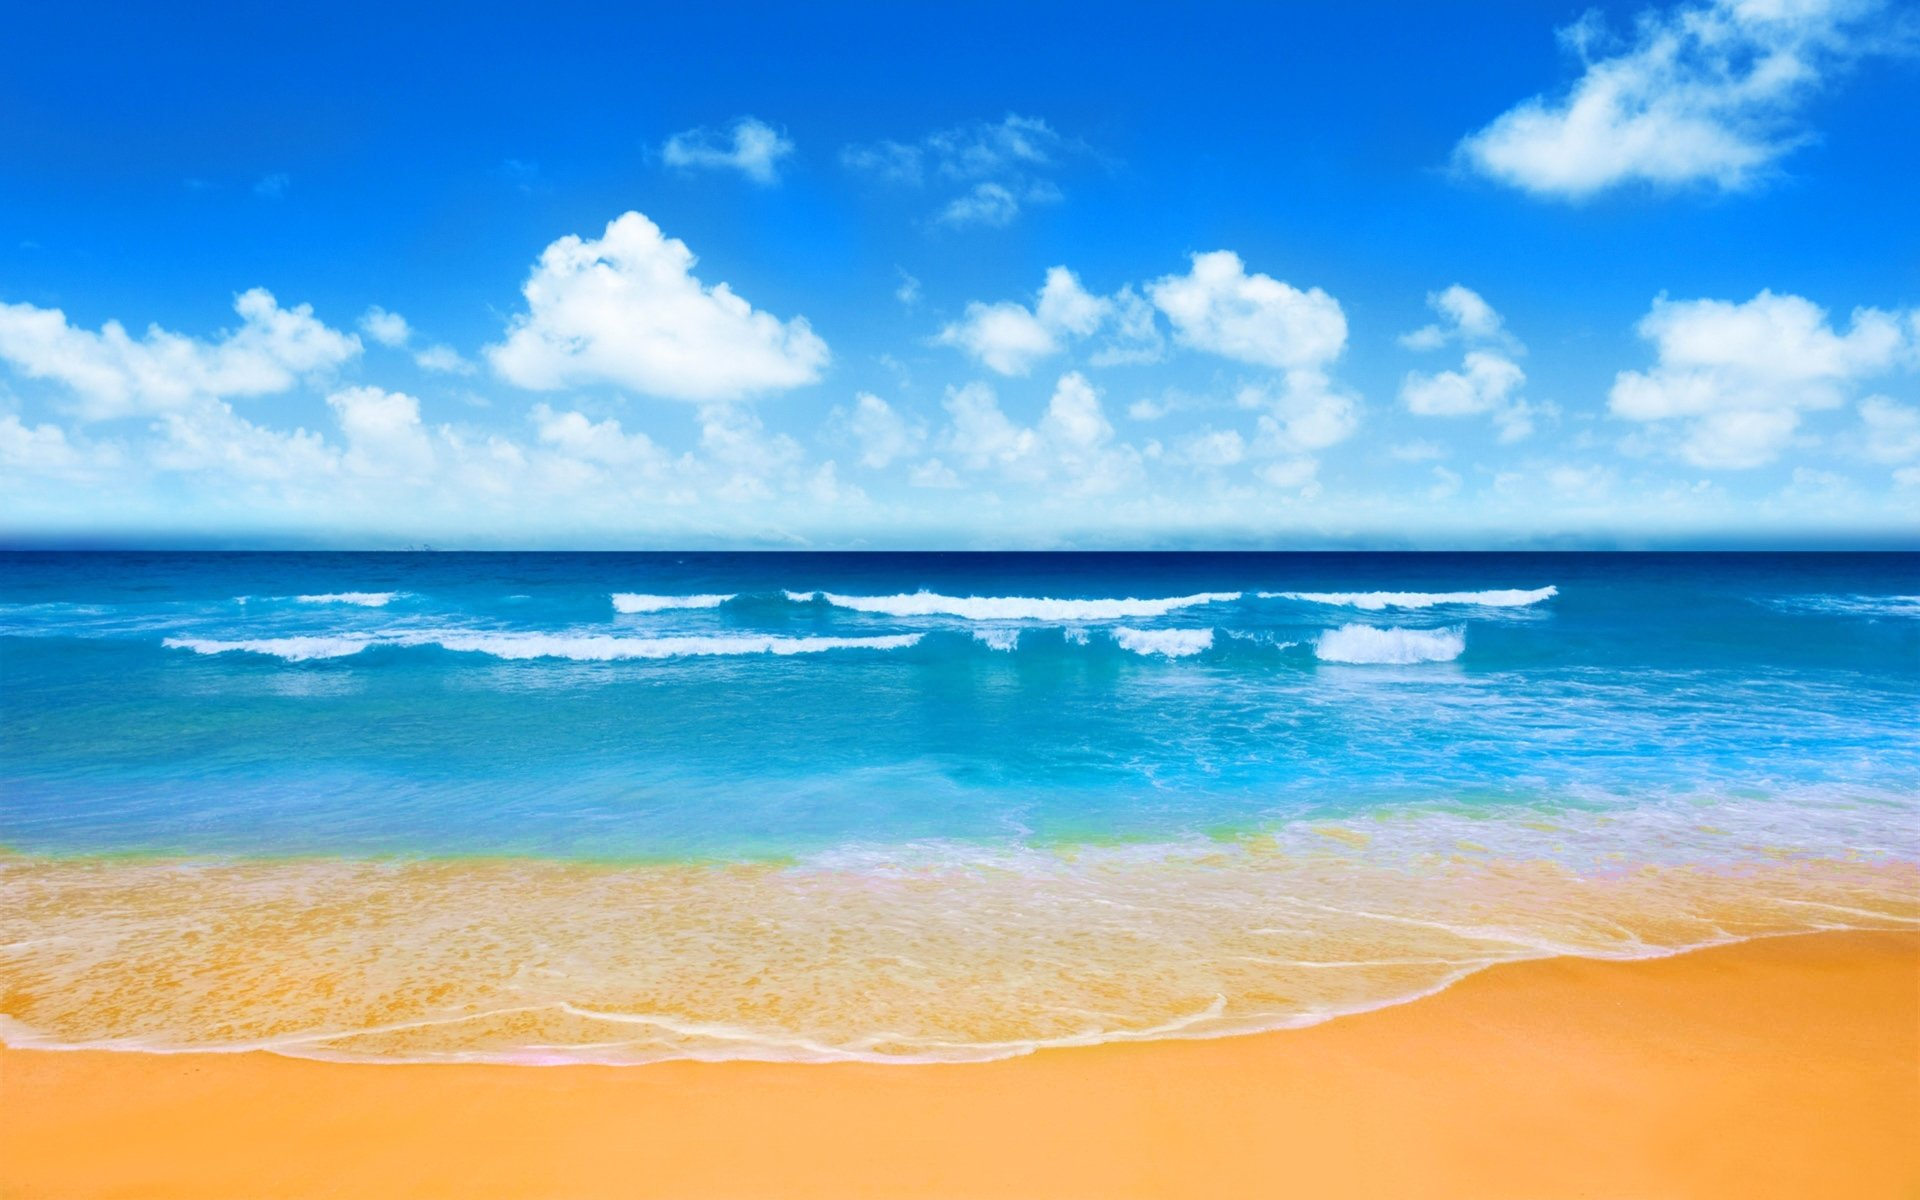 Earth - Beach  Azure Horizon Sunny Summer Wallpaper